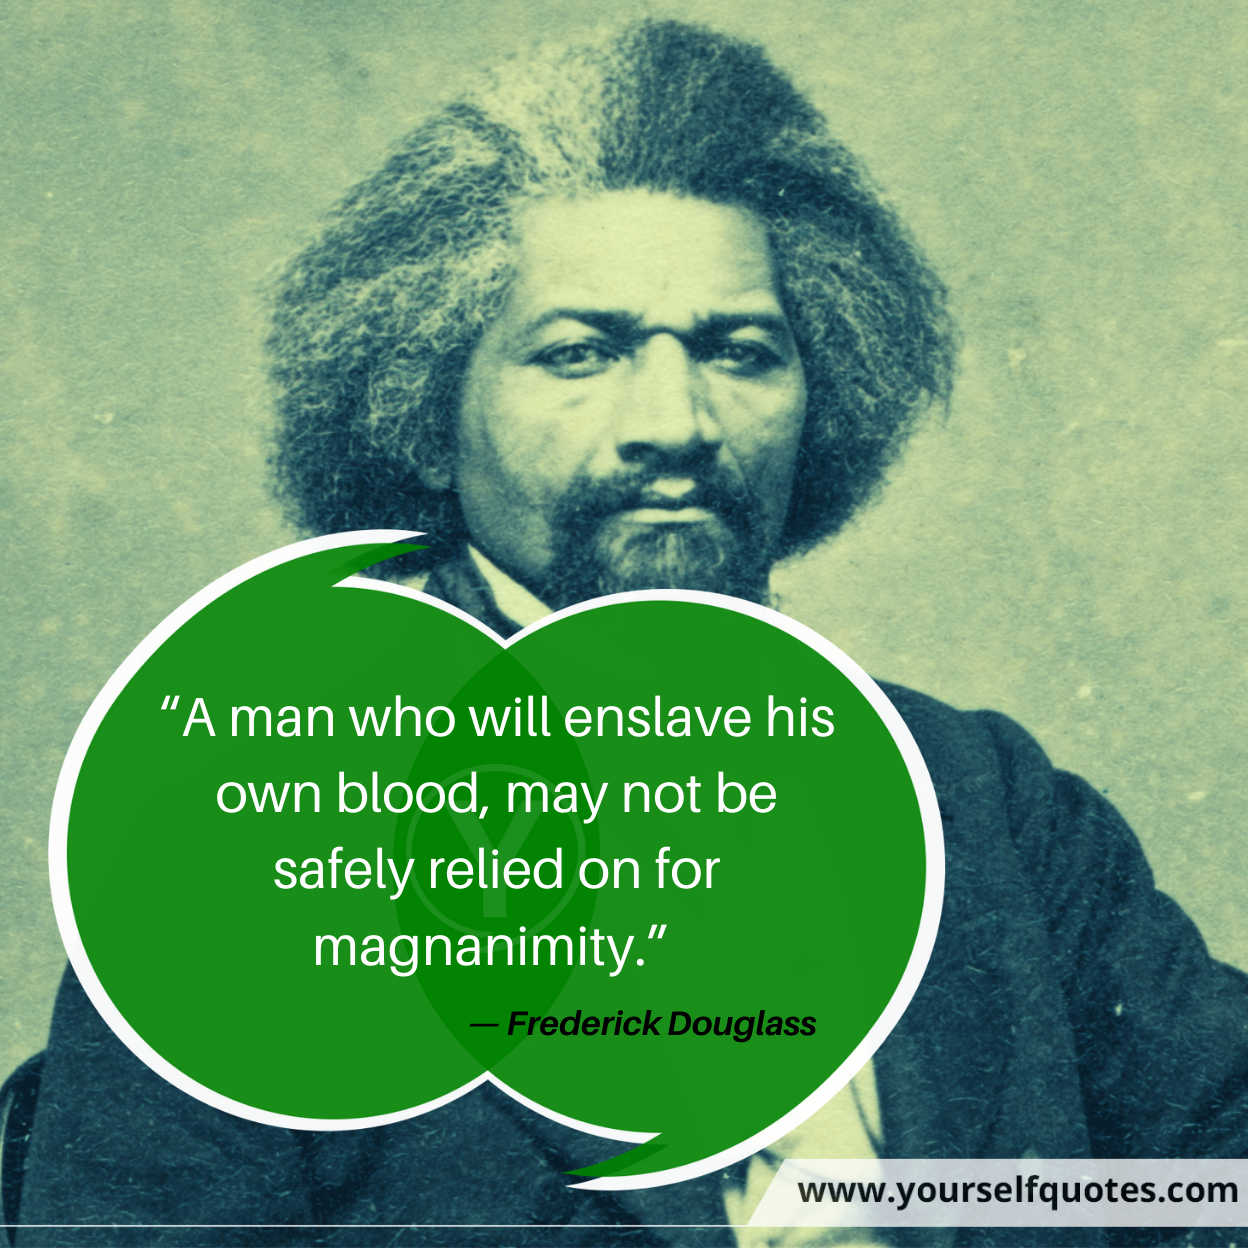 Quotes of Frederick Douglass